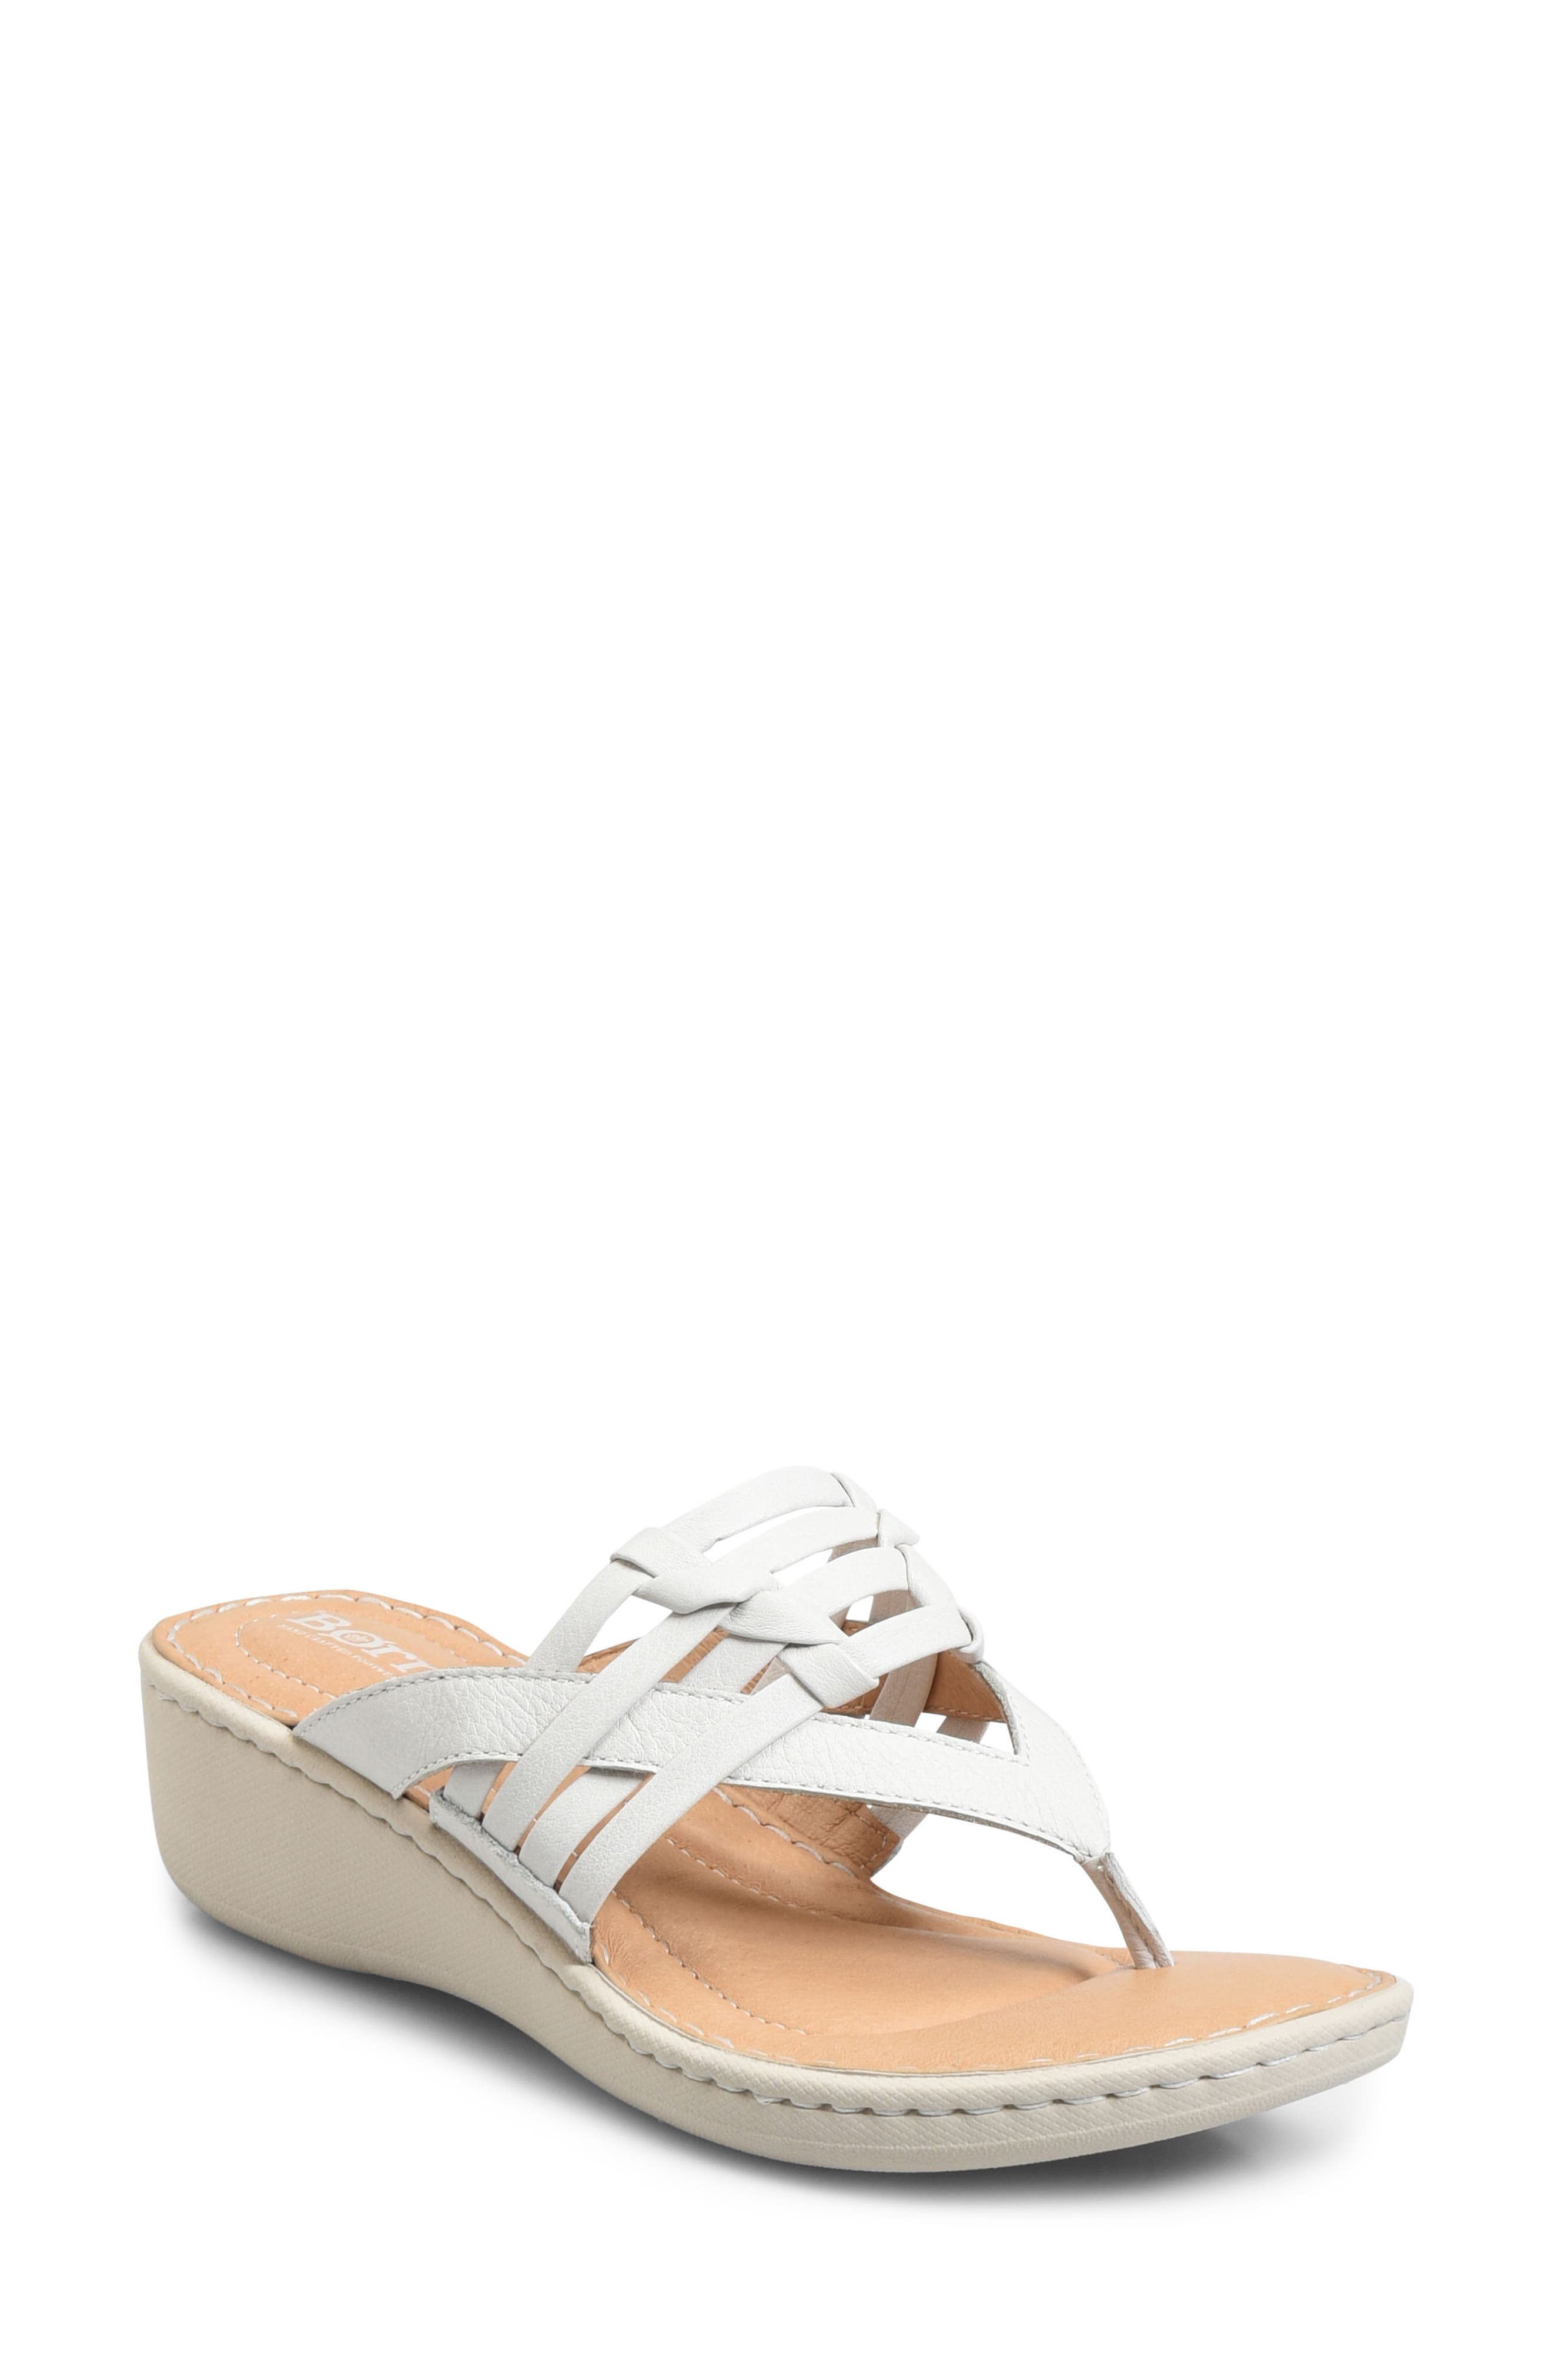 Tansey Wedge Sandal,                             Main thumbnail 1, color,